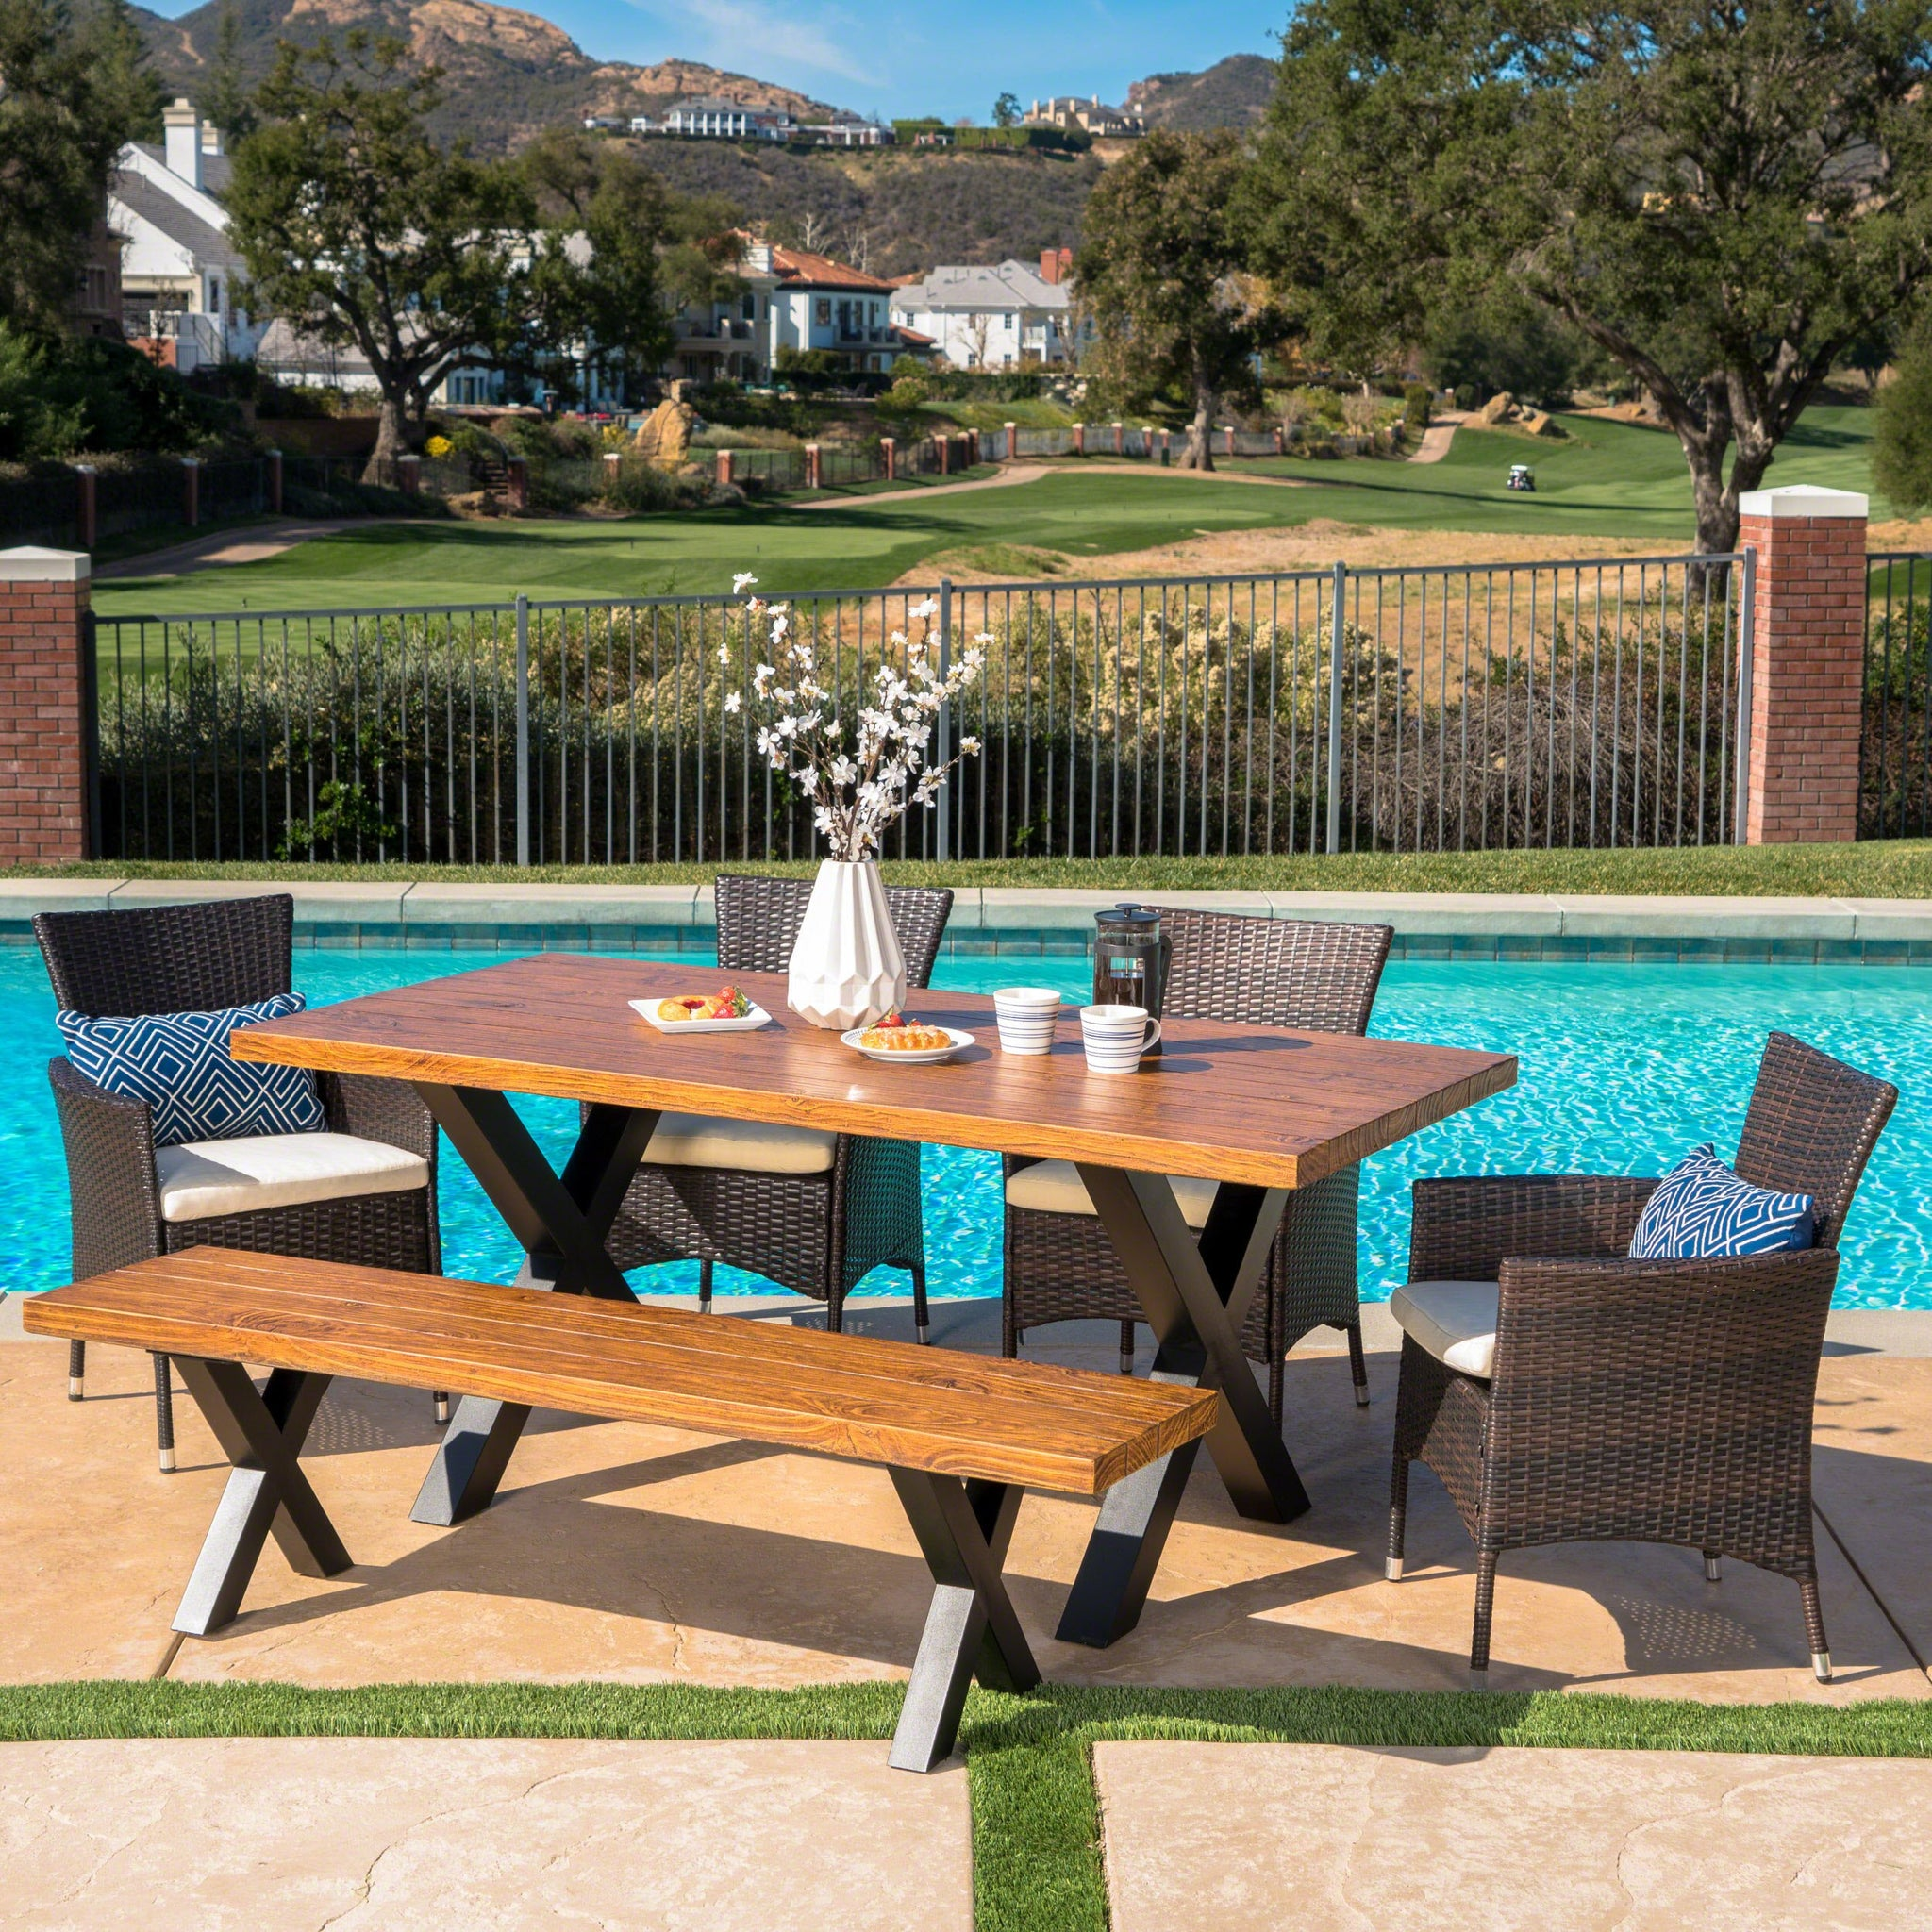 Englewood Outdoor 6 Piece Wicker Dining Set With Finish Concrete Table And Bench And Water Resistant Cushions